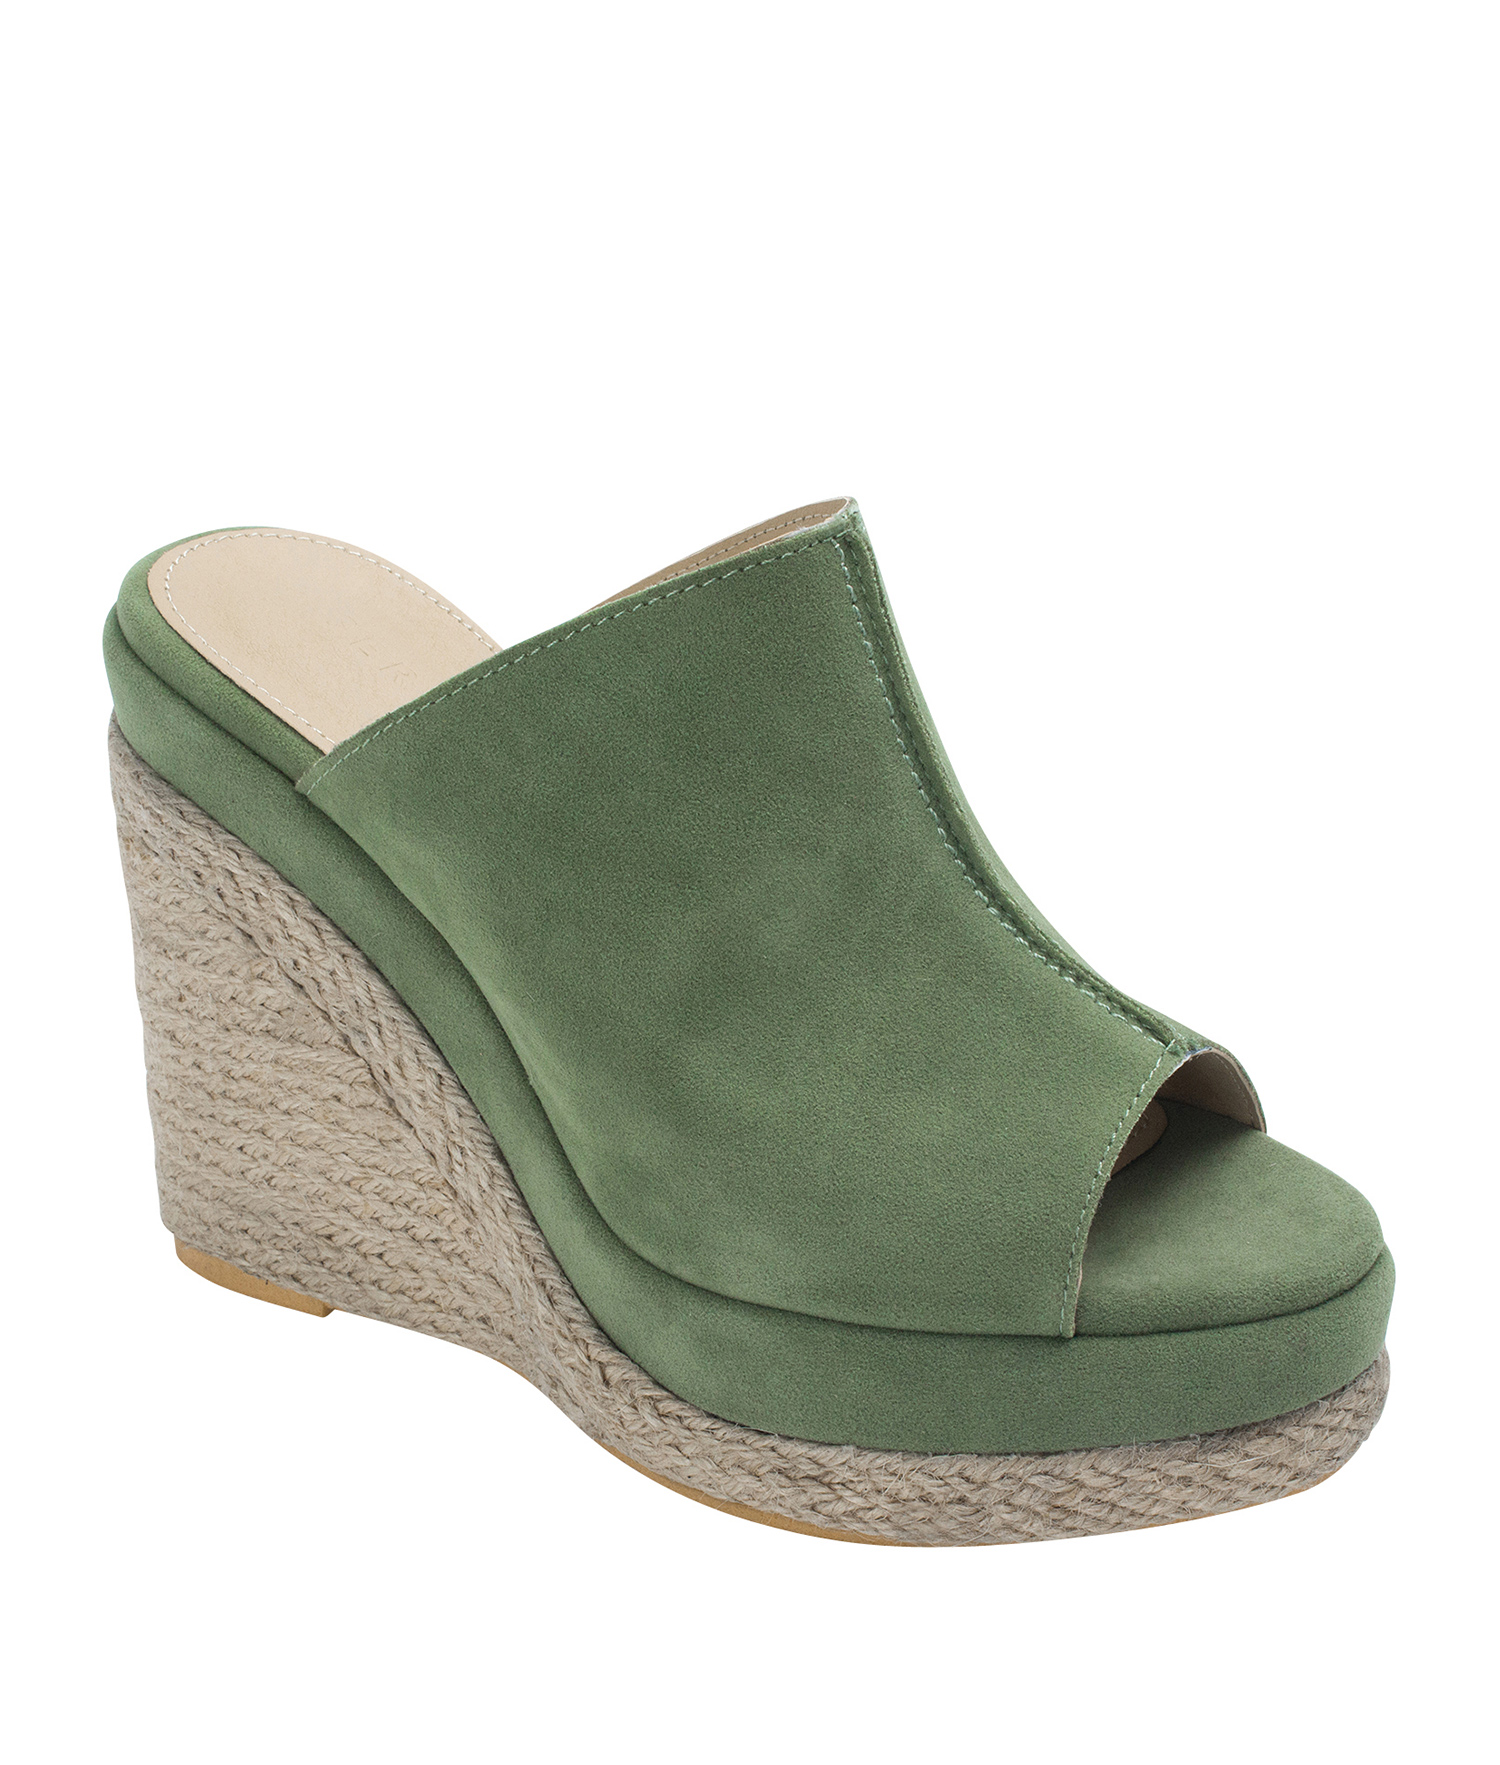 64ca78b065c Annakastle Womens Faux Suede Espadrille Wedge Mule Sandals Pale Green